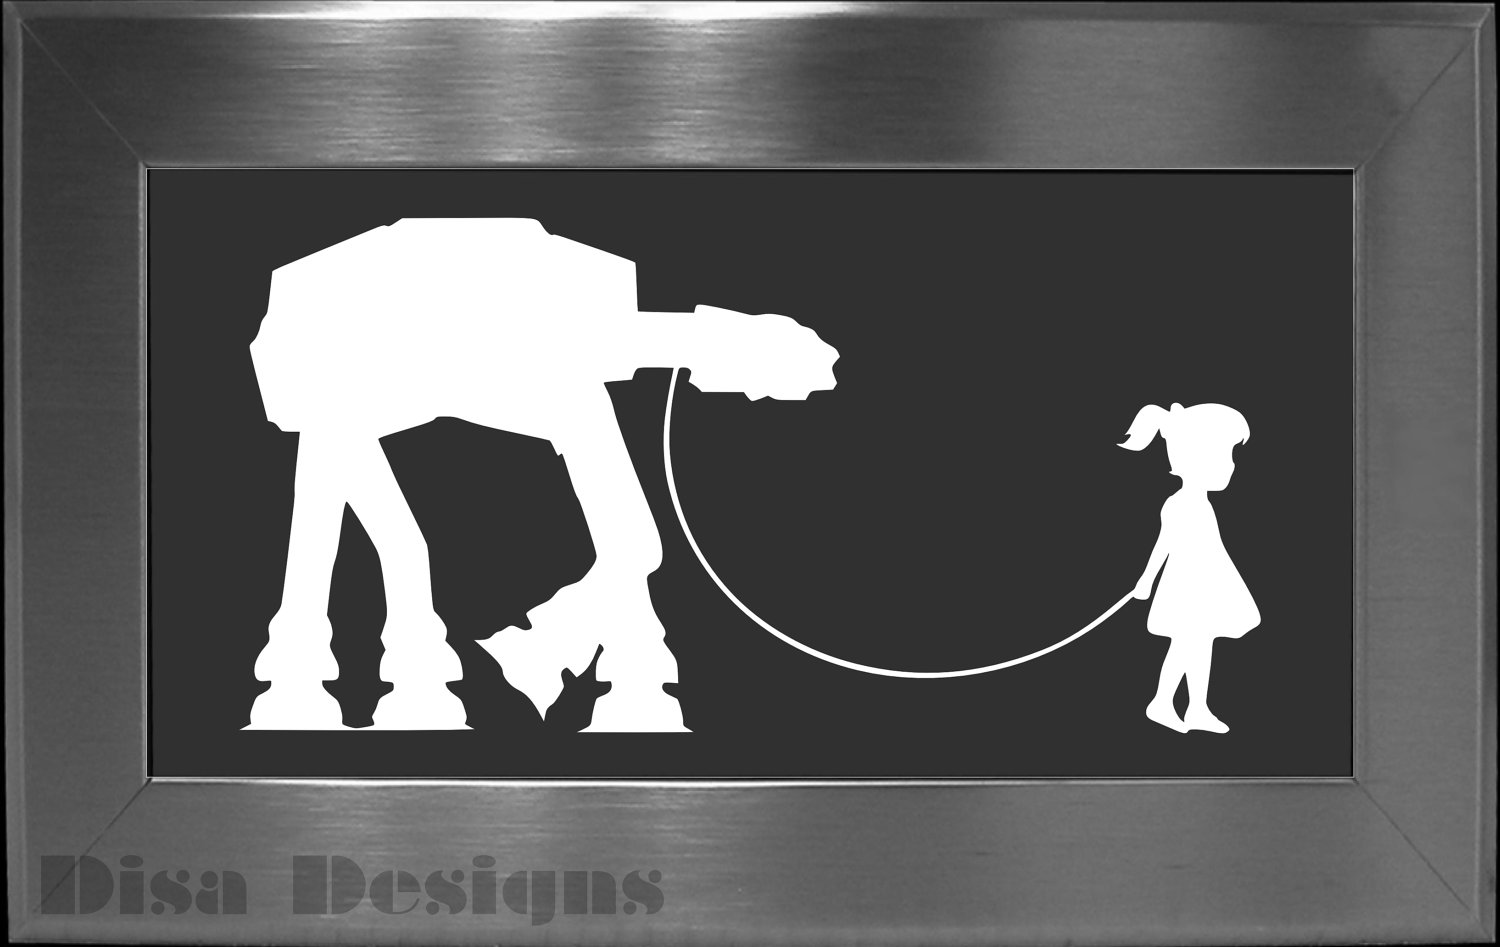 Family car sticker designs - Girl And Her At At Vinyl Decal Car Decal Macbook Decal